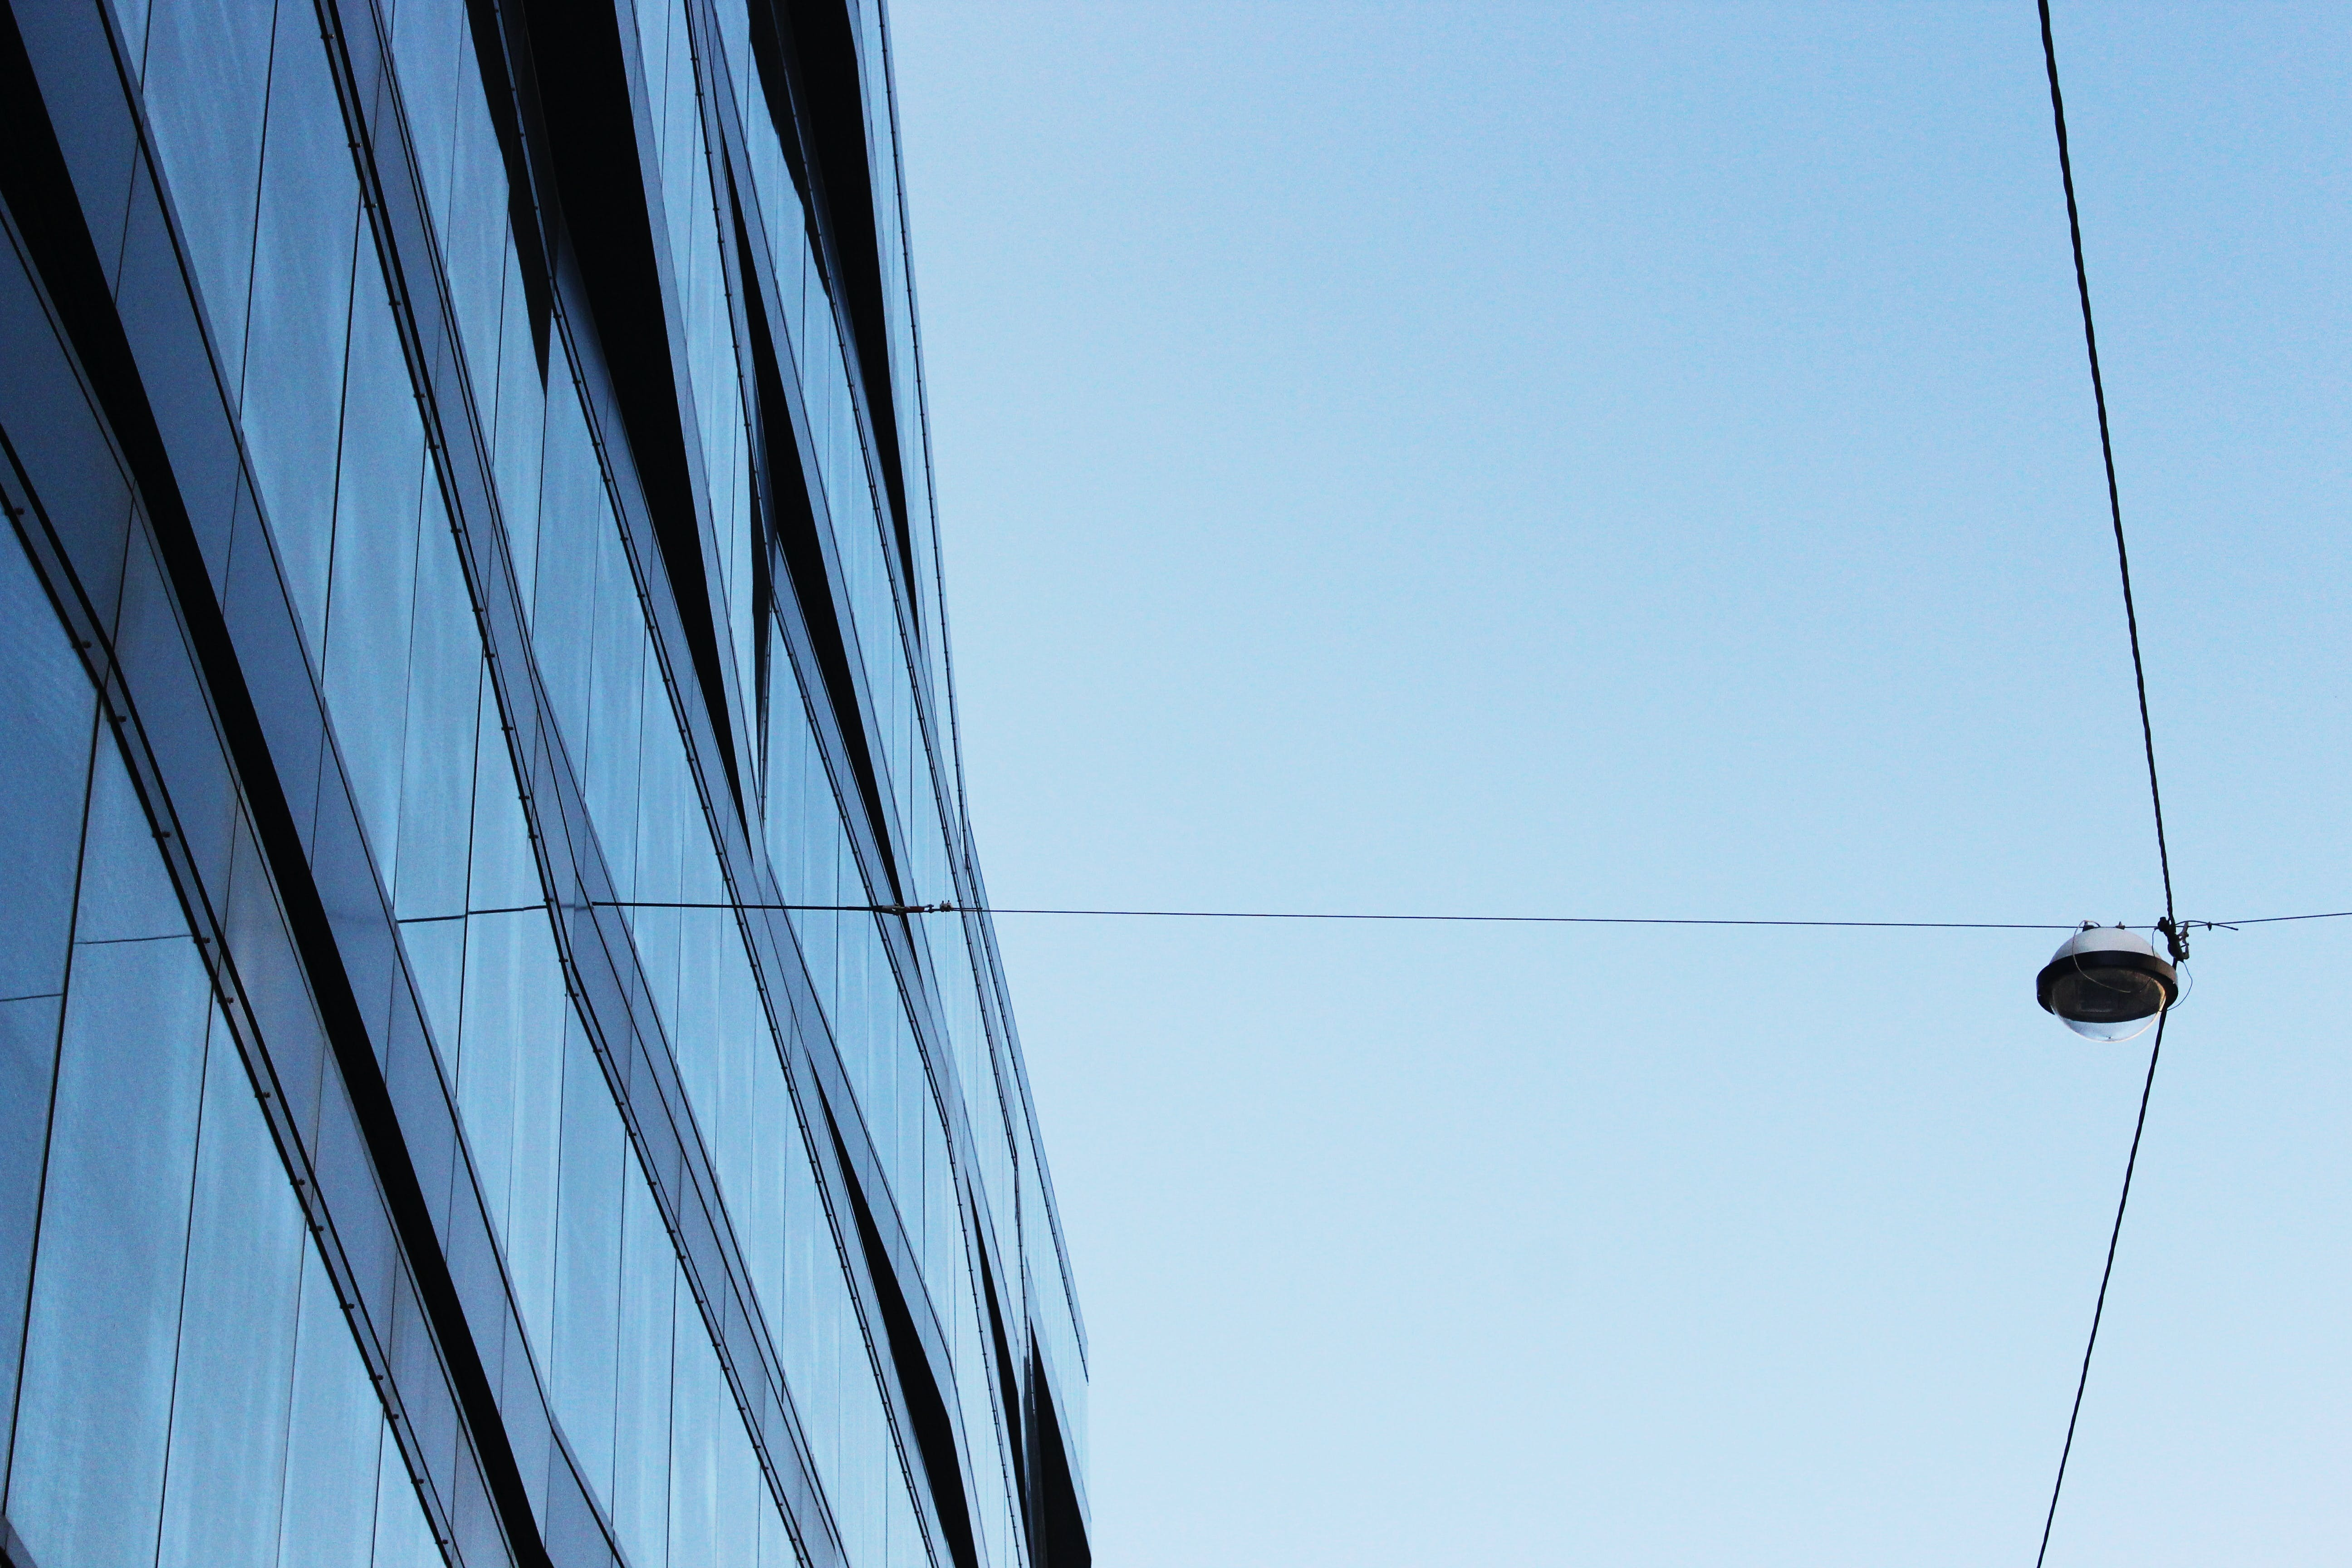 Glass Curtain Window Building With Cable